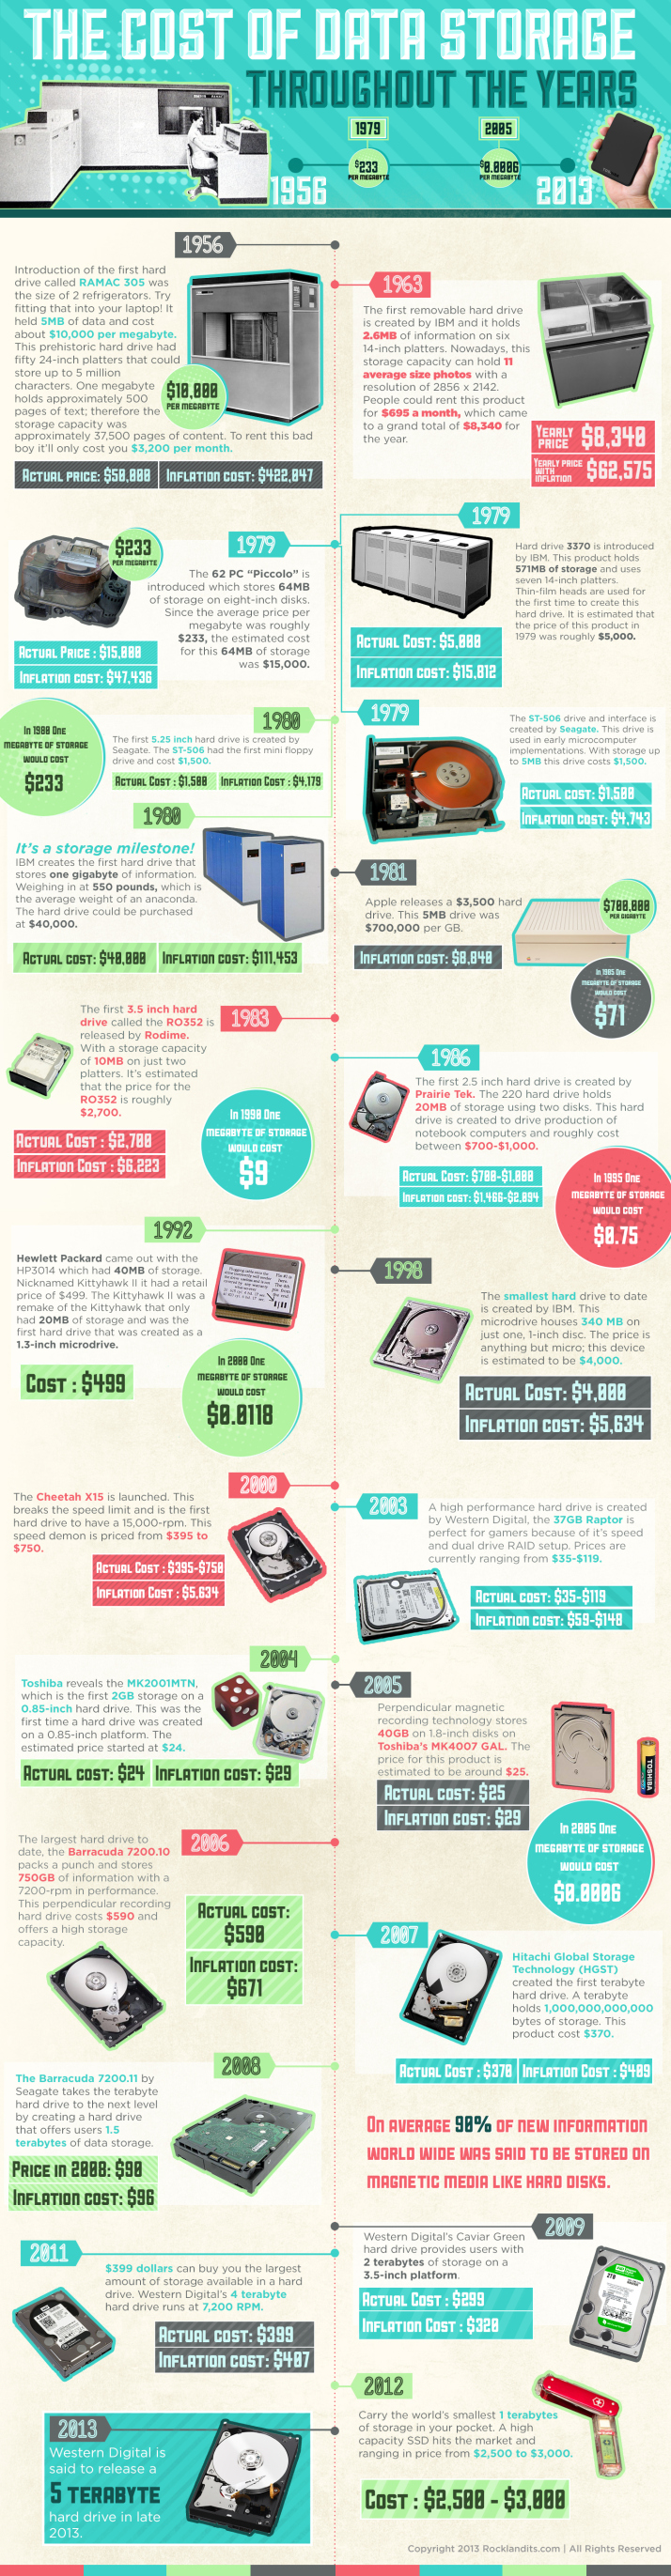 The cost of data storage